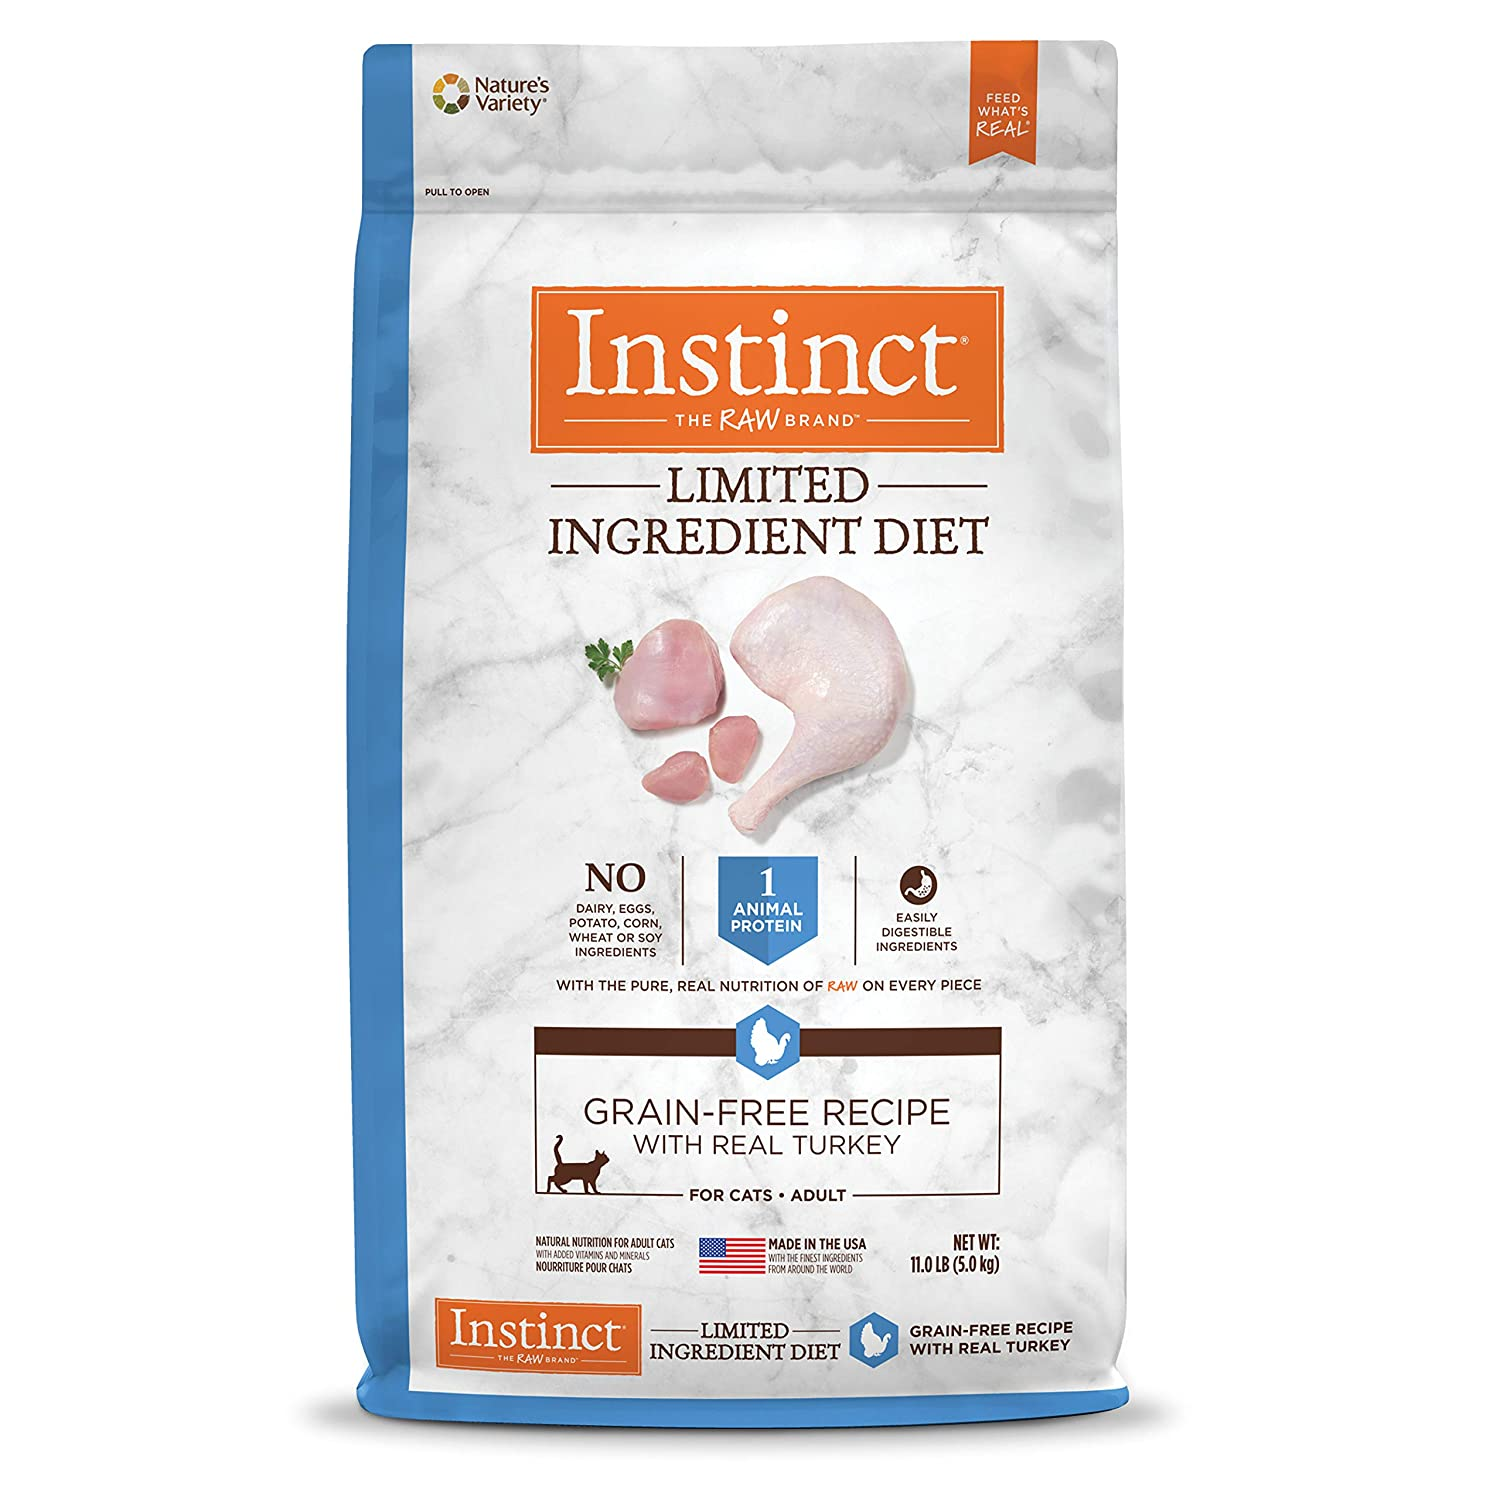 11 lb Instinct Limited Ingredient Diet Grain Free Recipe with Real Turkey Natural Dry Cat Food by Nature's Variety, 11 Lb. Bag